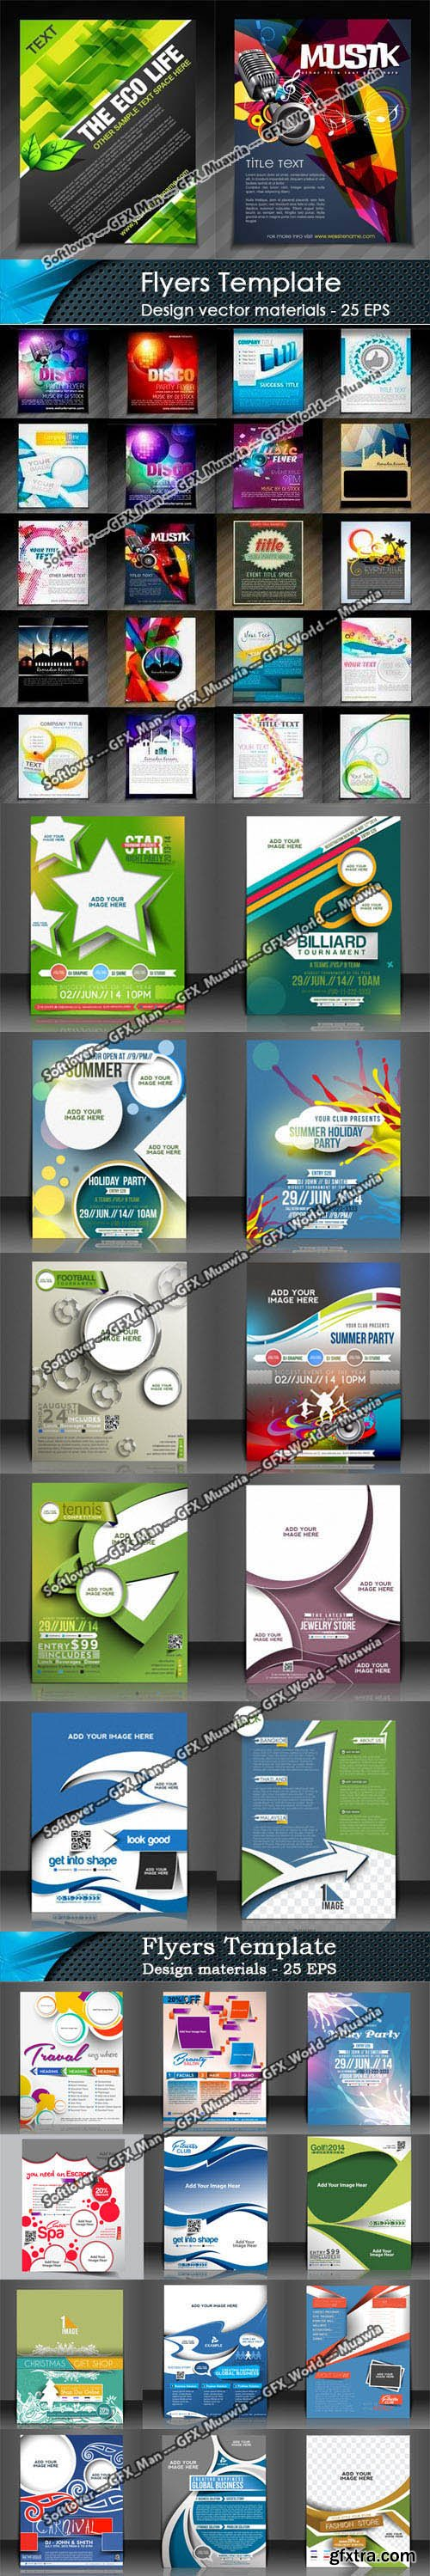 60 Flyer Templates Collection in Vector